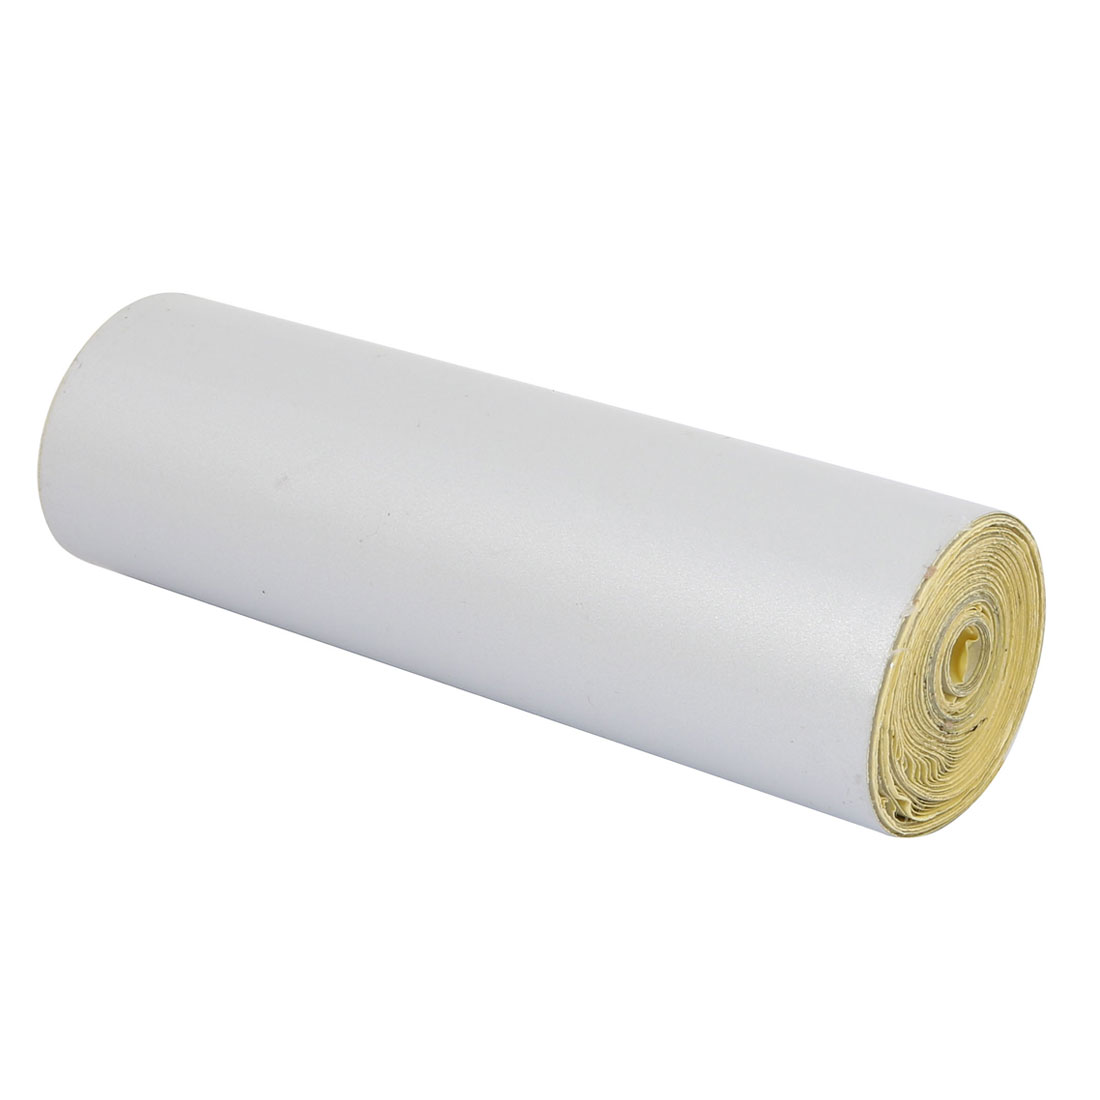 Single Sided Adhesive Reflective Warning Tape White 6M Length 15cm Width